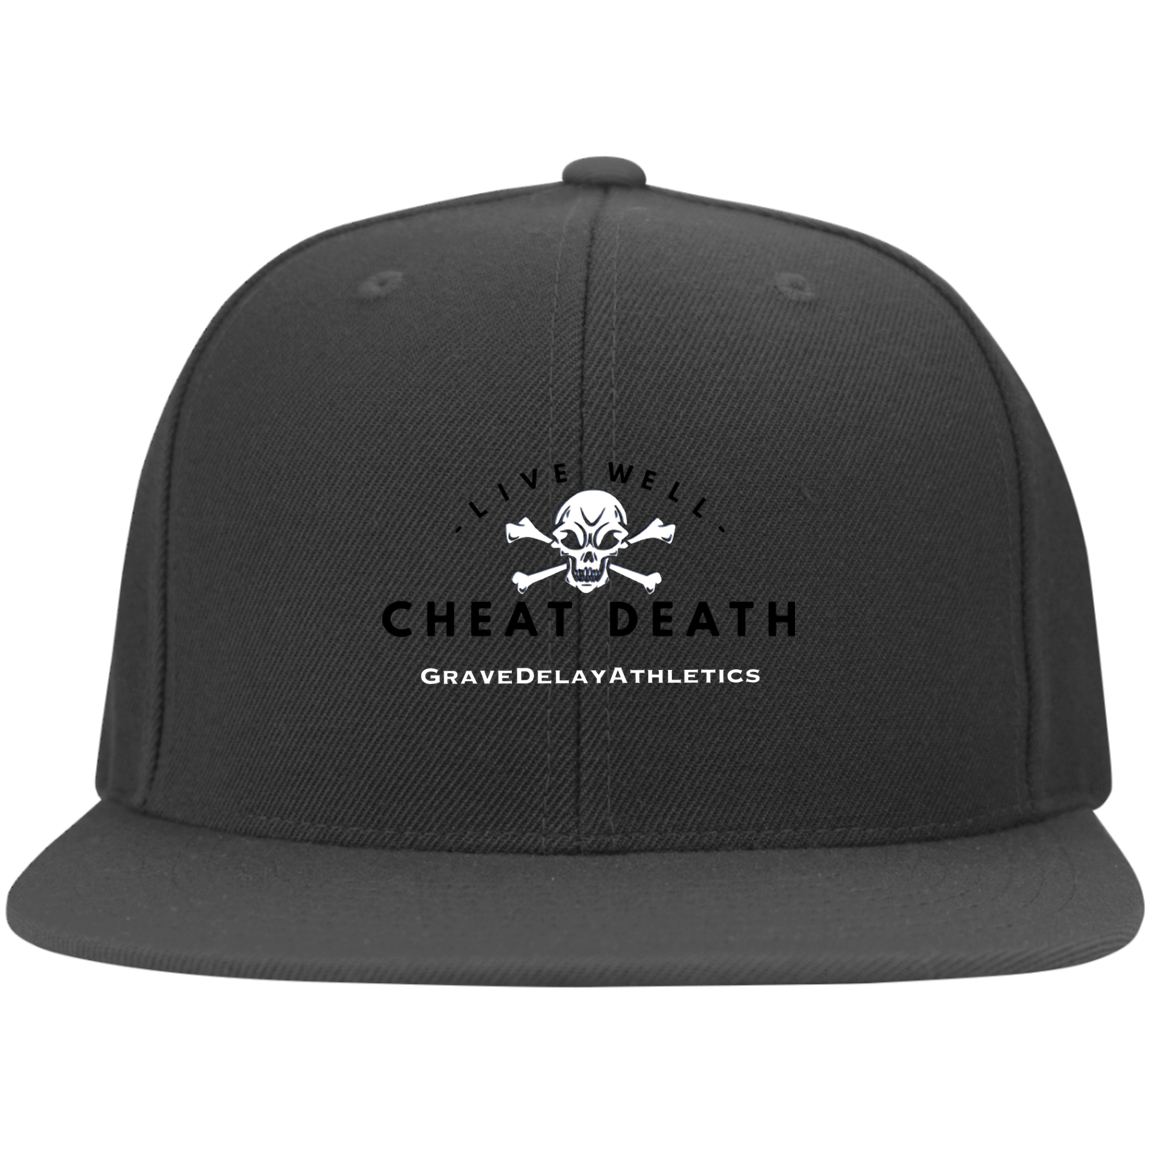 Live Well Cheat Death - Embroidered Flat Bill Twill Flexfit Cap